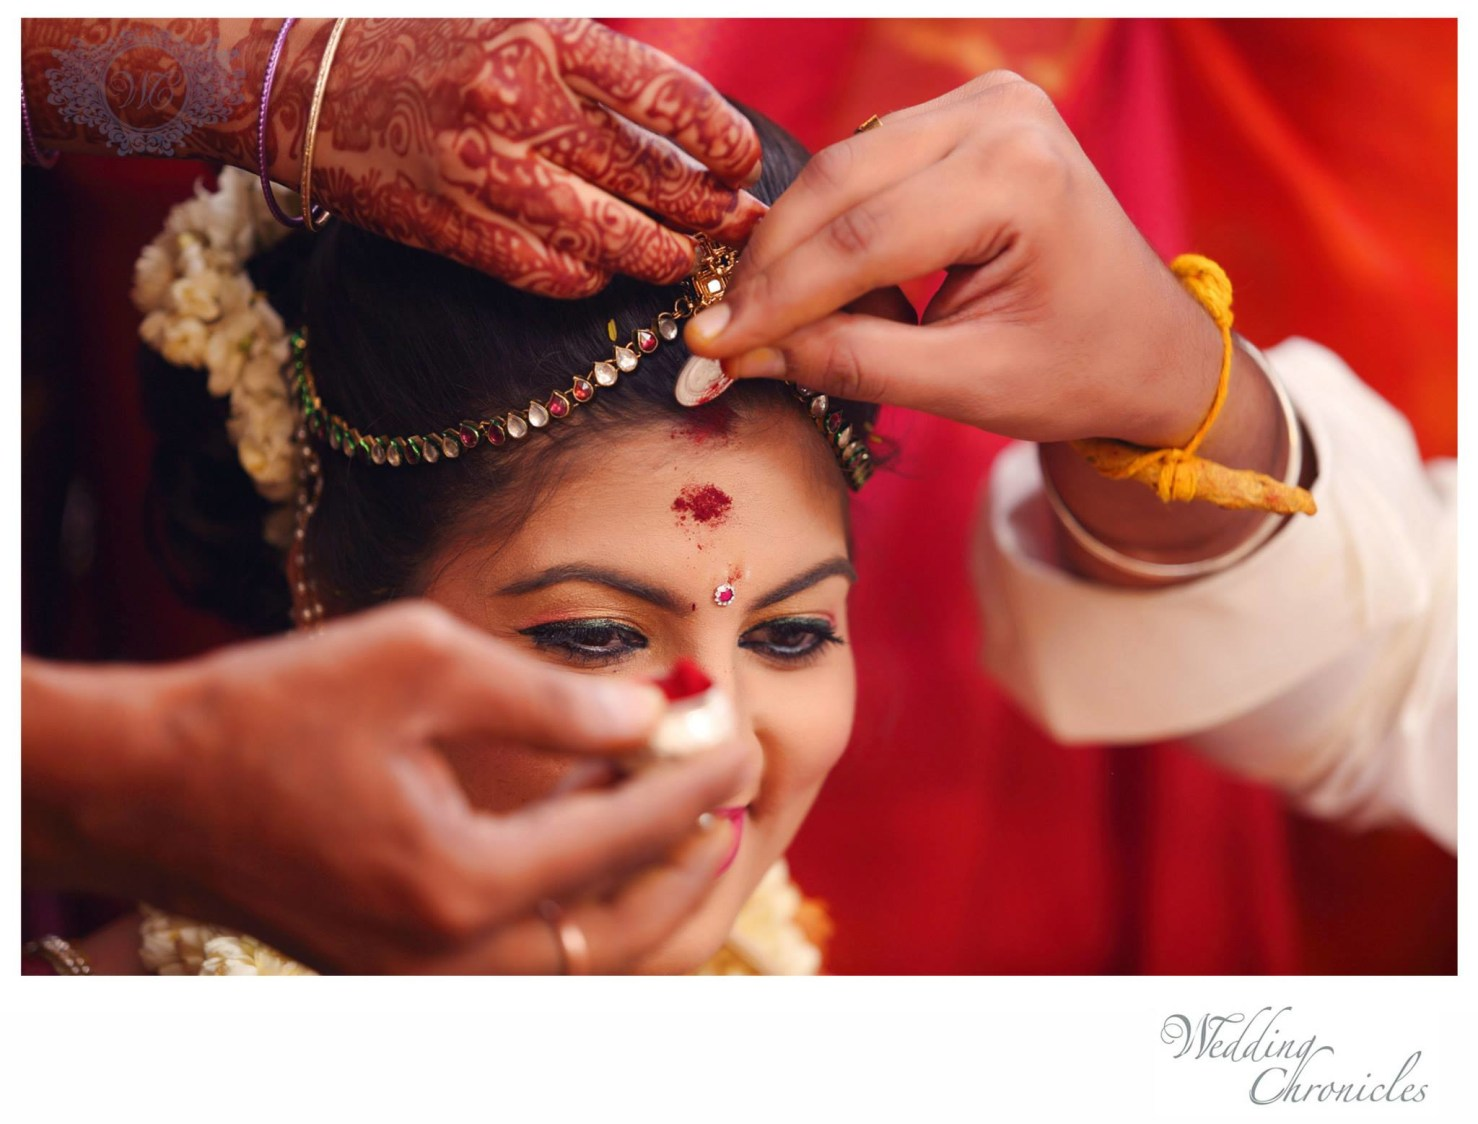 Her new life begins from here by Wedding Chronicles Wedding-photography | Weddings Photos & Ideas